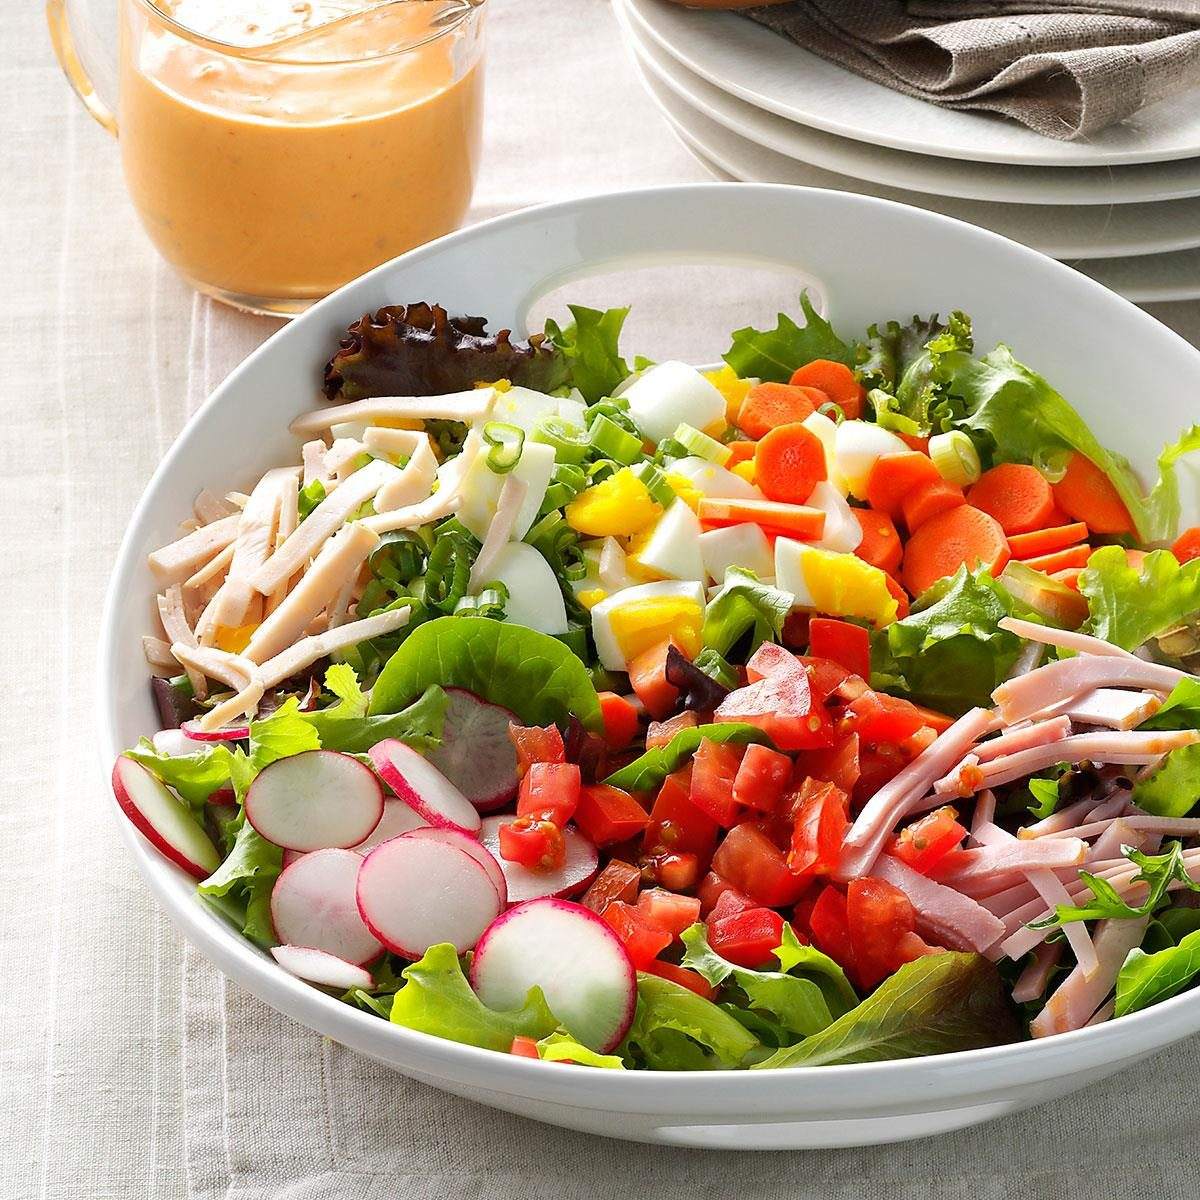 Inspired by: McAlister's Deli Chef Salad